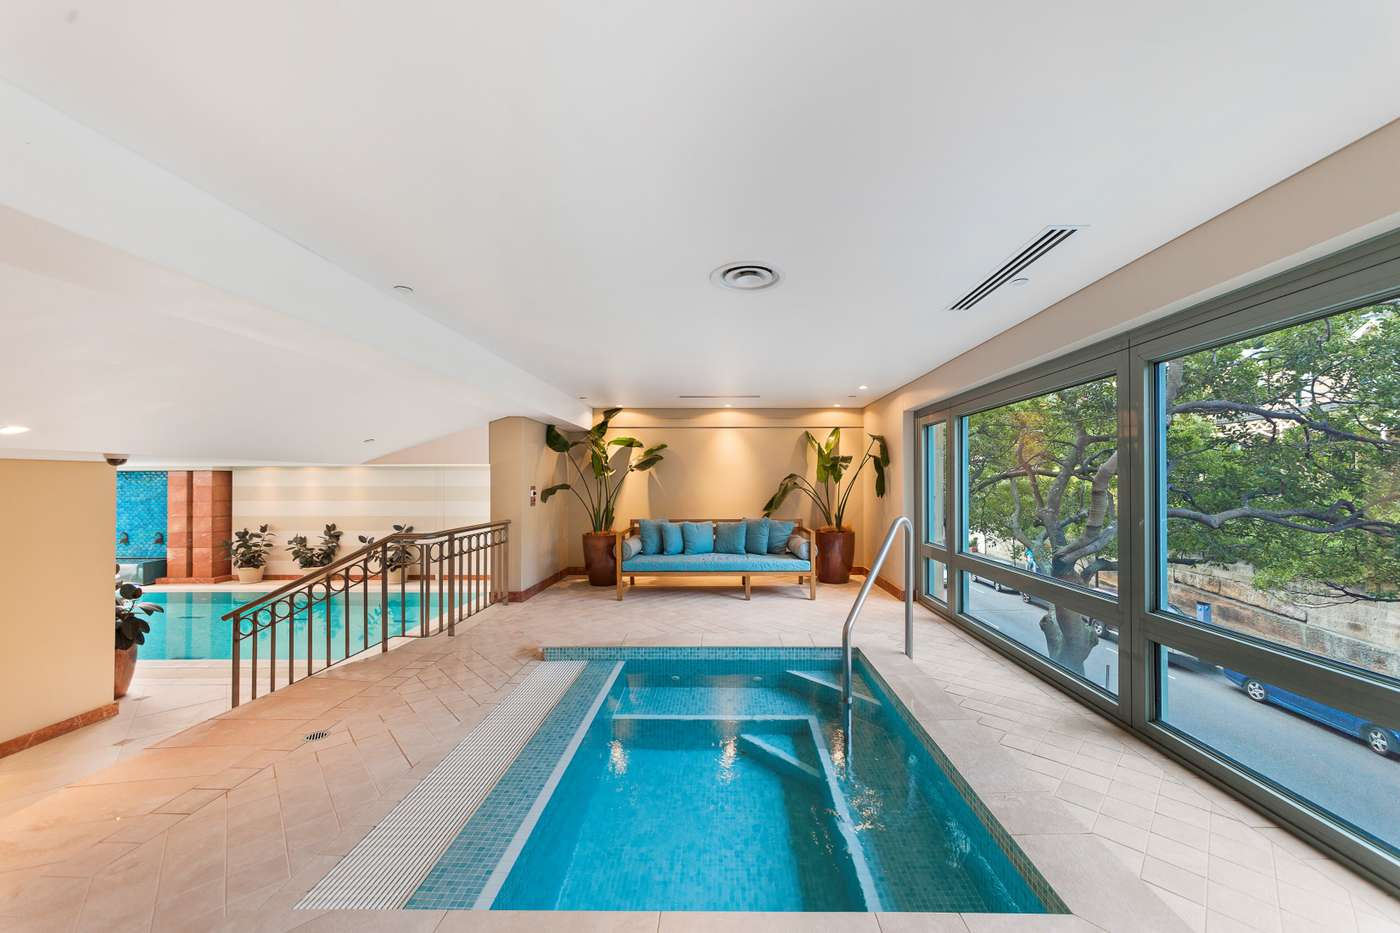 Main view of Homely apartment listing, 1111/127 Kent St, Sydney, NSW 2000